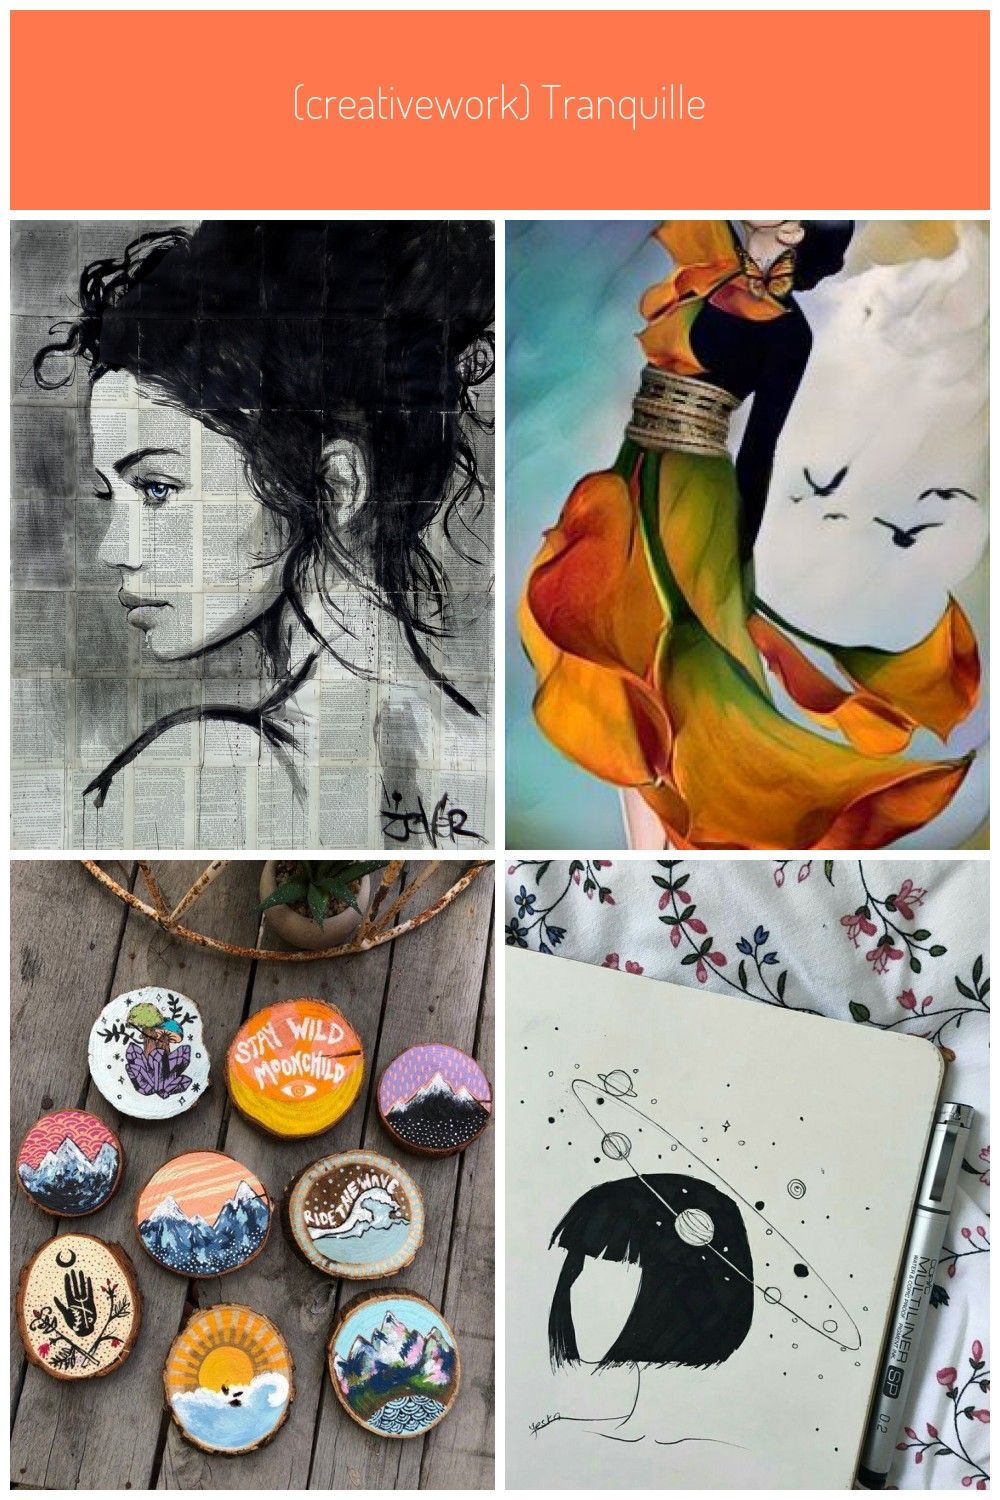 Bilder Collage Online : bilder, collage, online, CreativeWork), TRANQUILLE, Jover., Drawing., Online, Bluethumb., #kunst, Bilder, Jover, Drawings,, Jover,, Small, Paintings